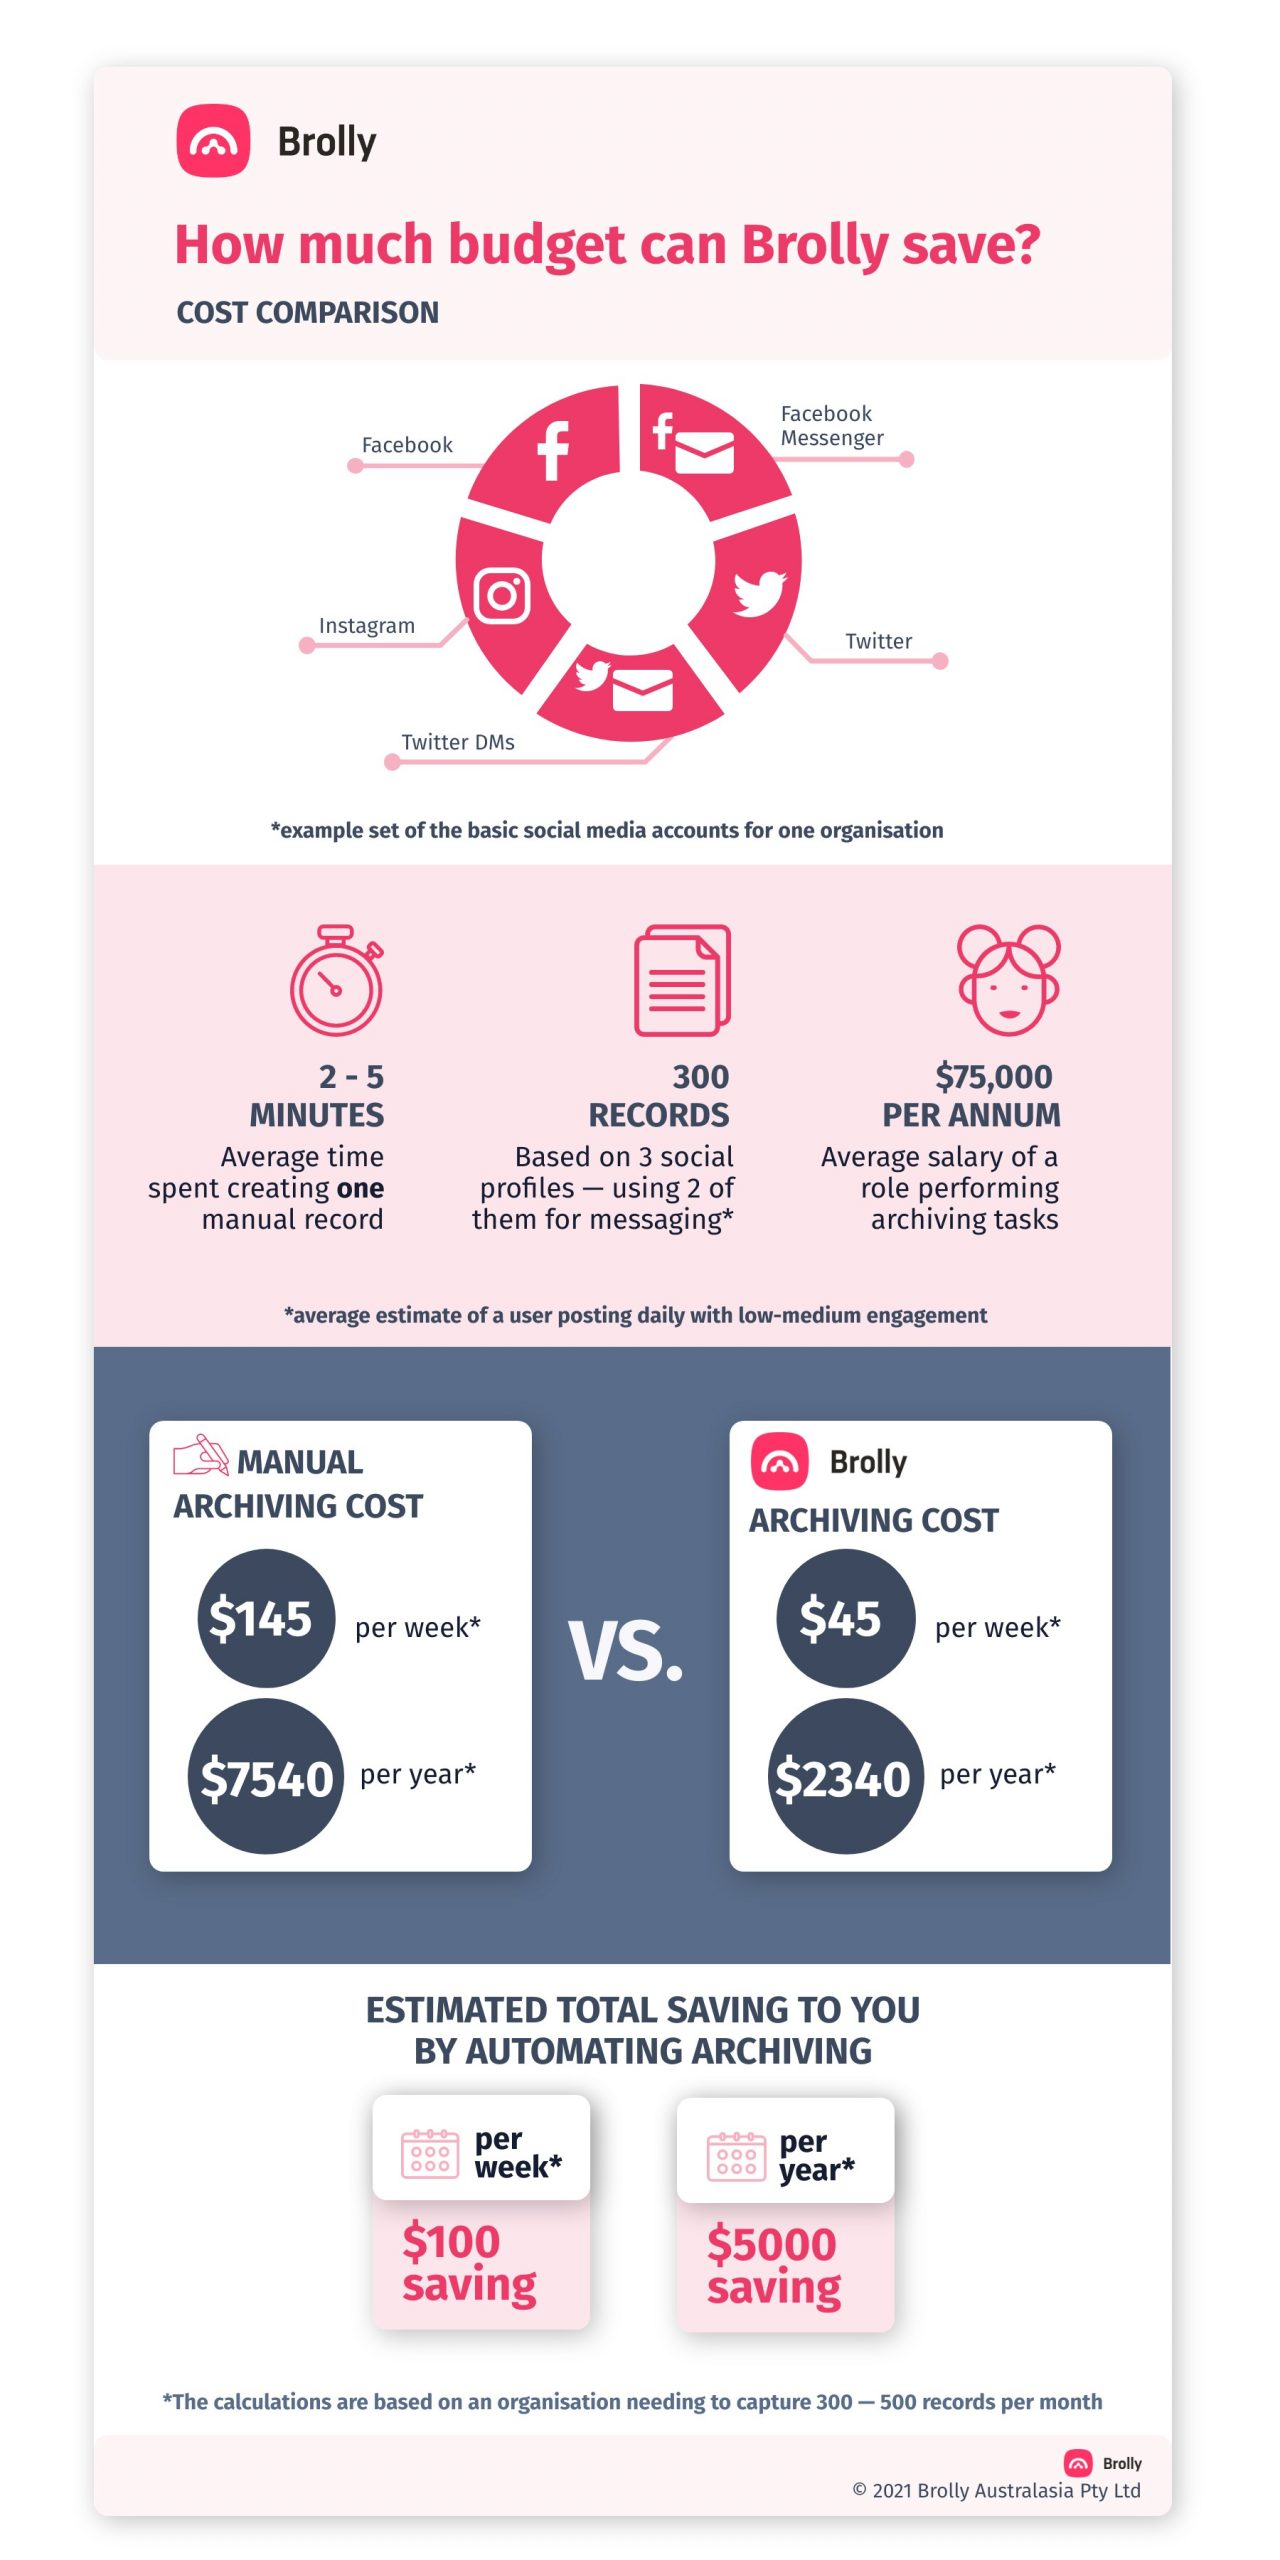 social media archiving infographic showing Brolly can save $5000 per year for even a basic set of social media accounts